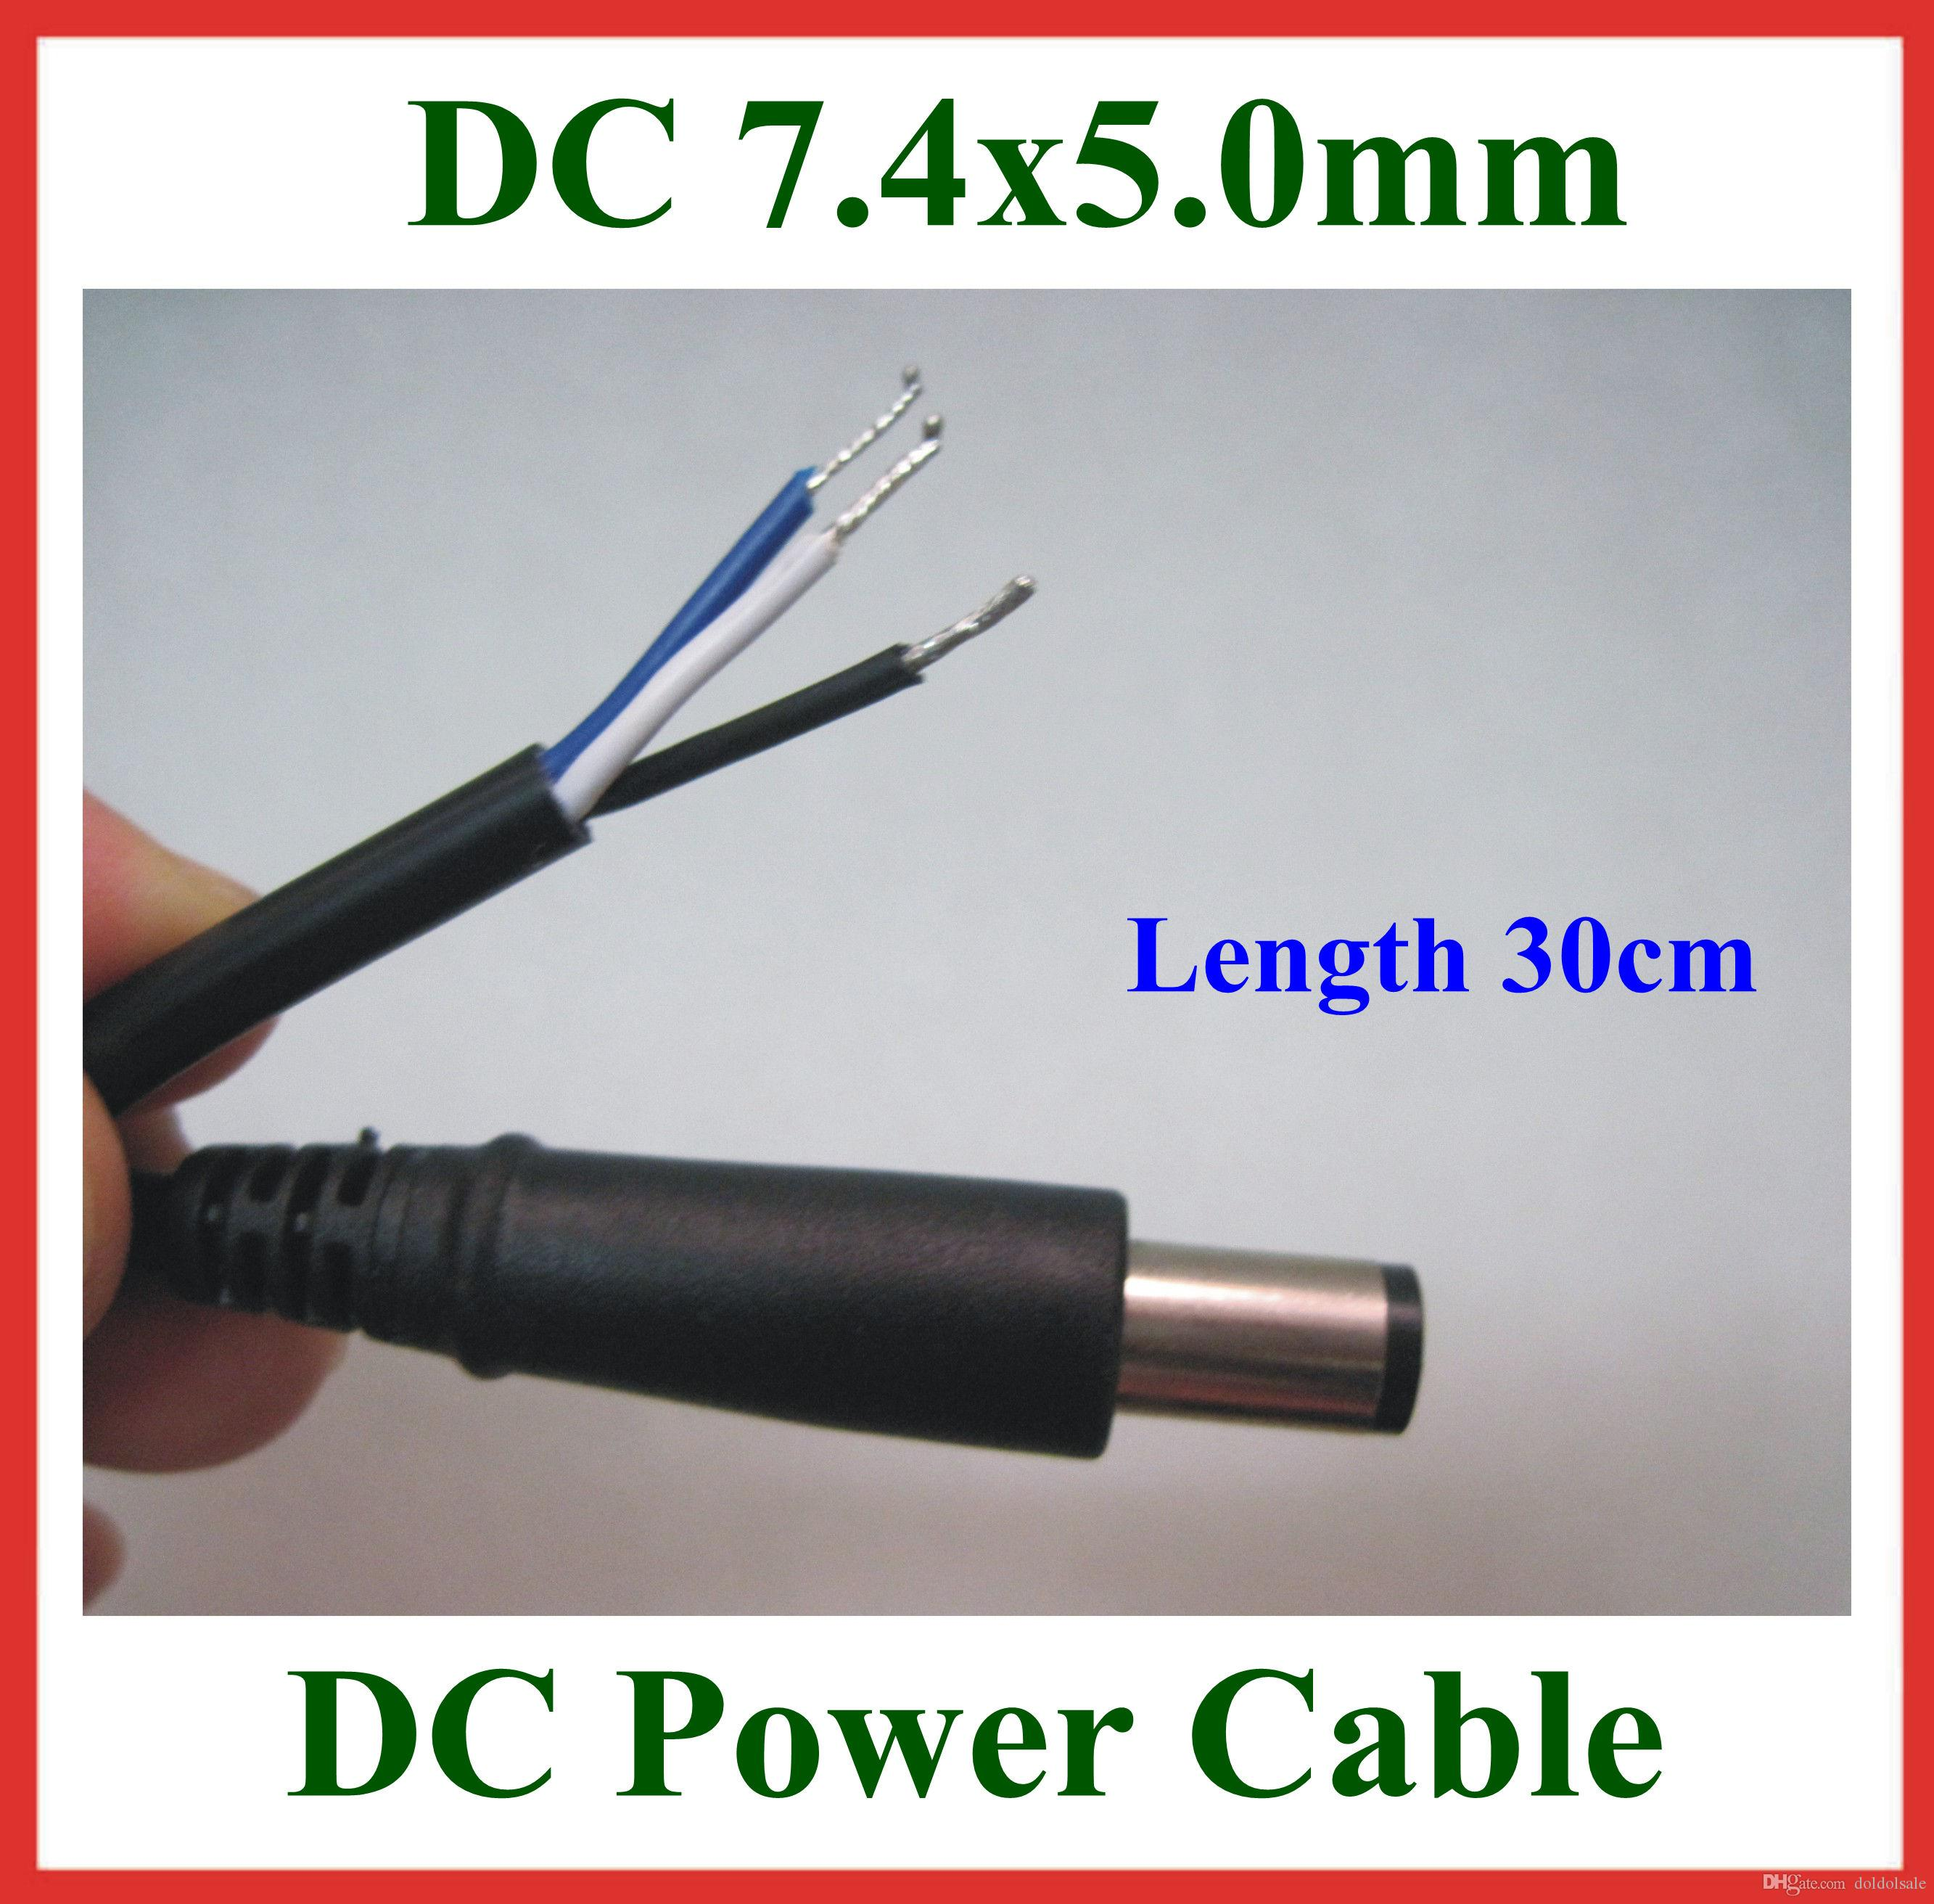 Dc Tip Plug 7 4 5 0mm    7 4x5 0mm Dc Power Supply Cable